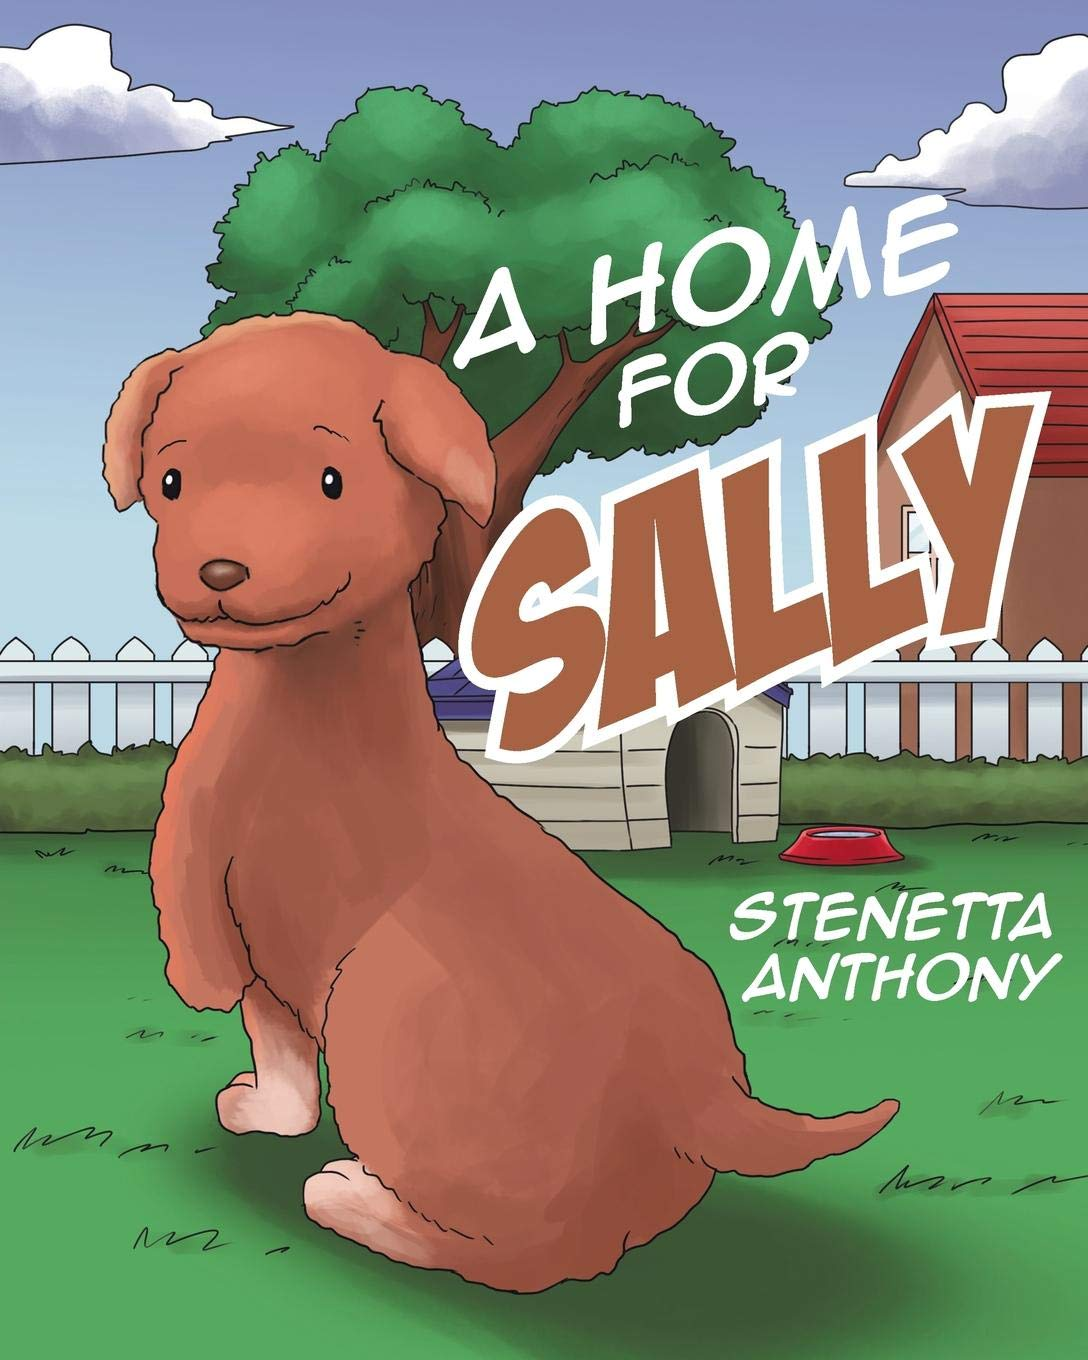 A Home for Sally: A book about Pet Adoptions and Kindness​